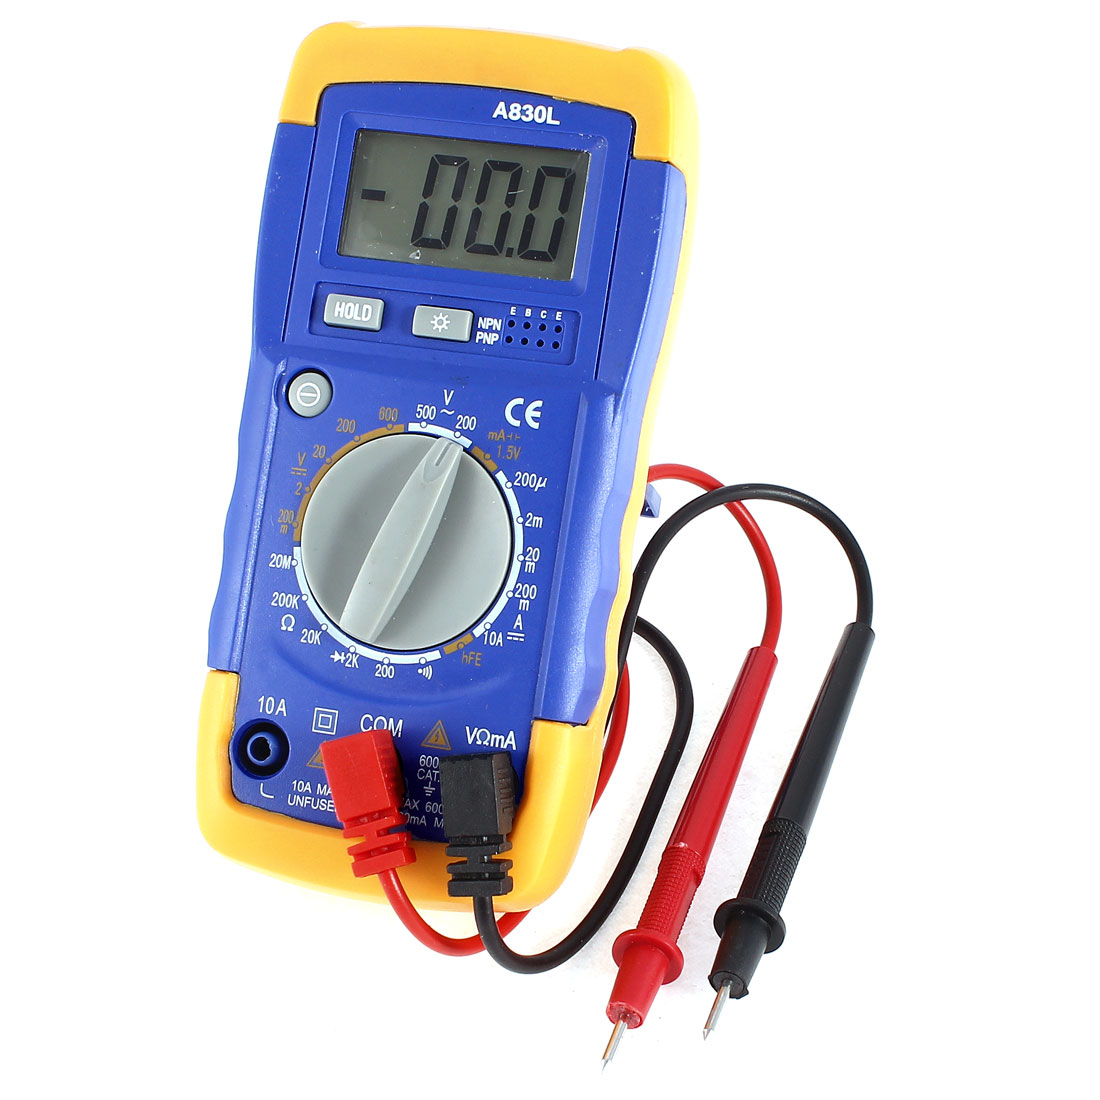 LCD Display Volt Frequency Digital Multimeter A830L Battery Power